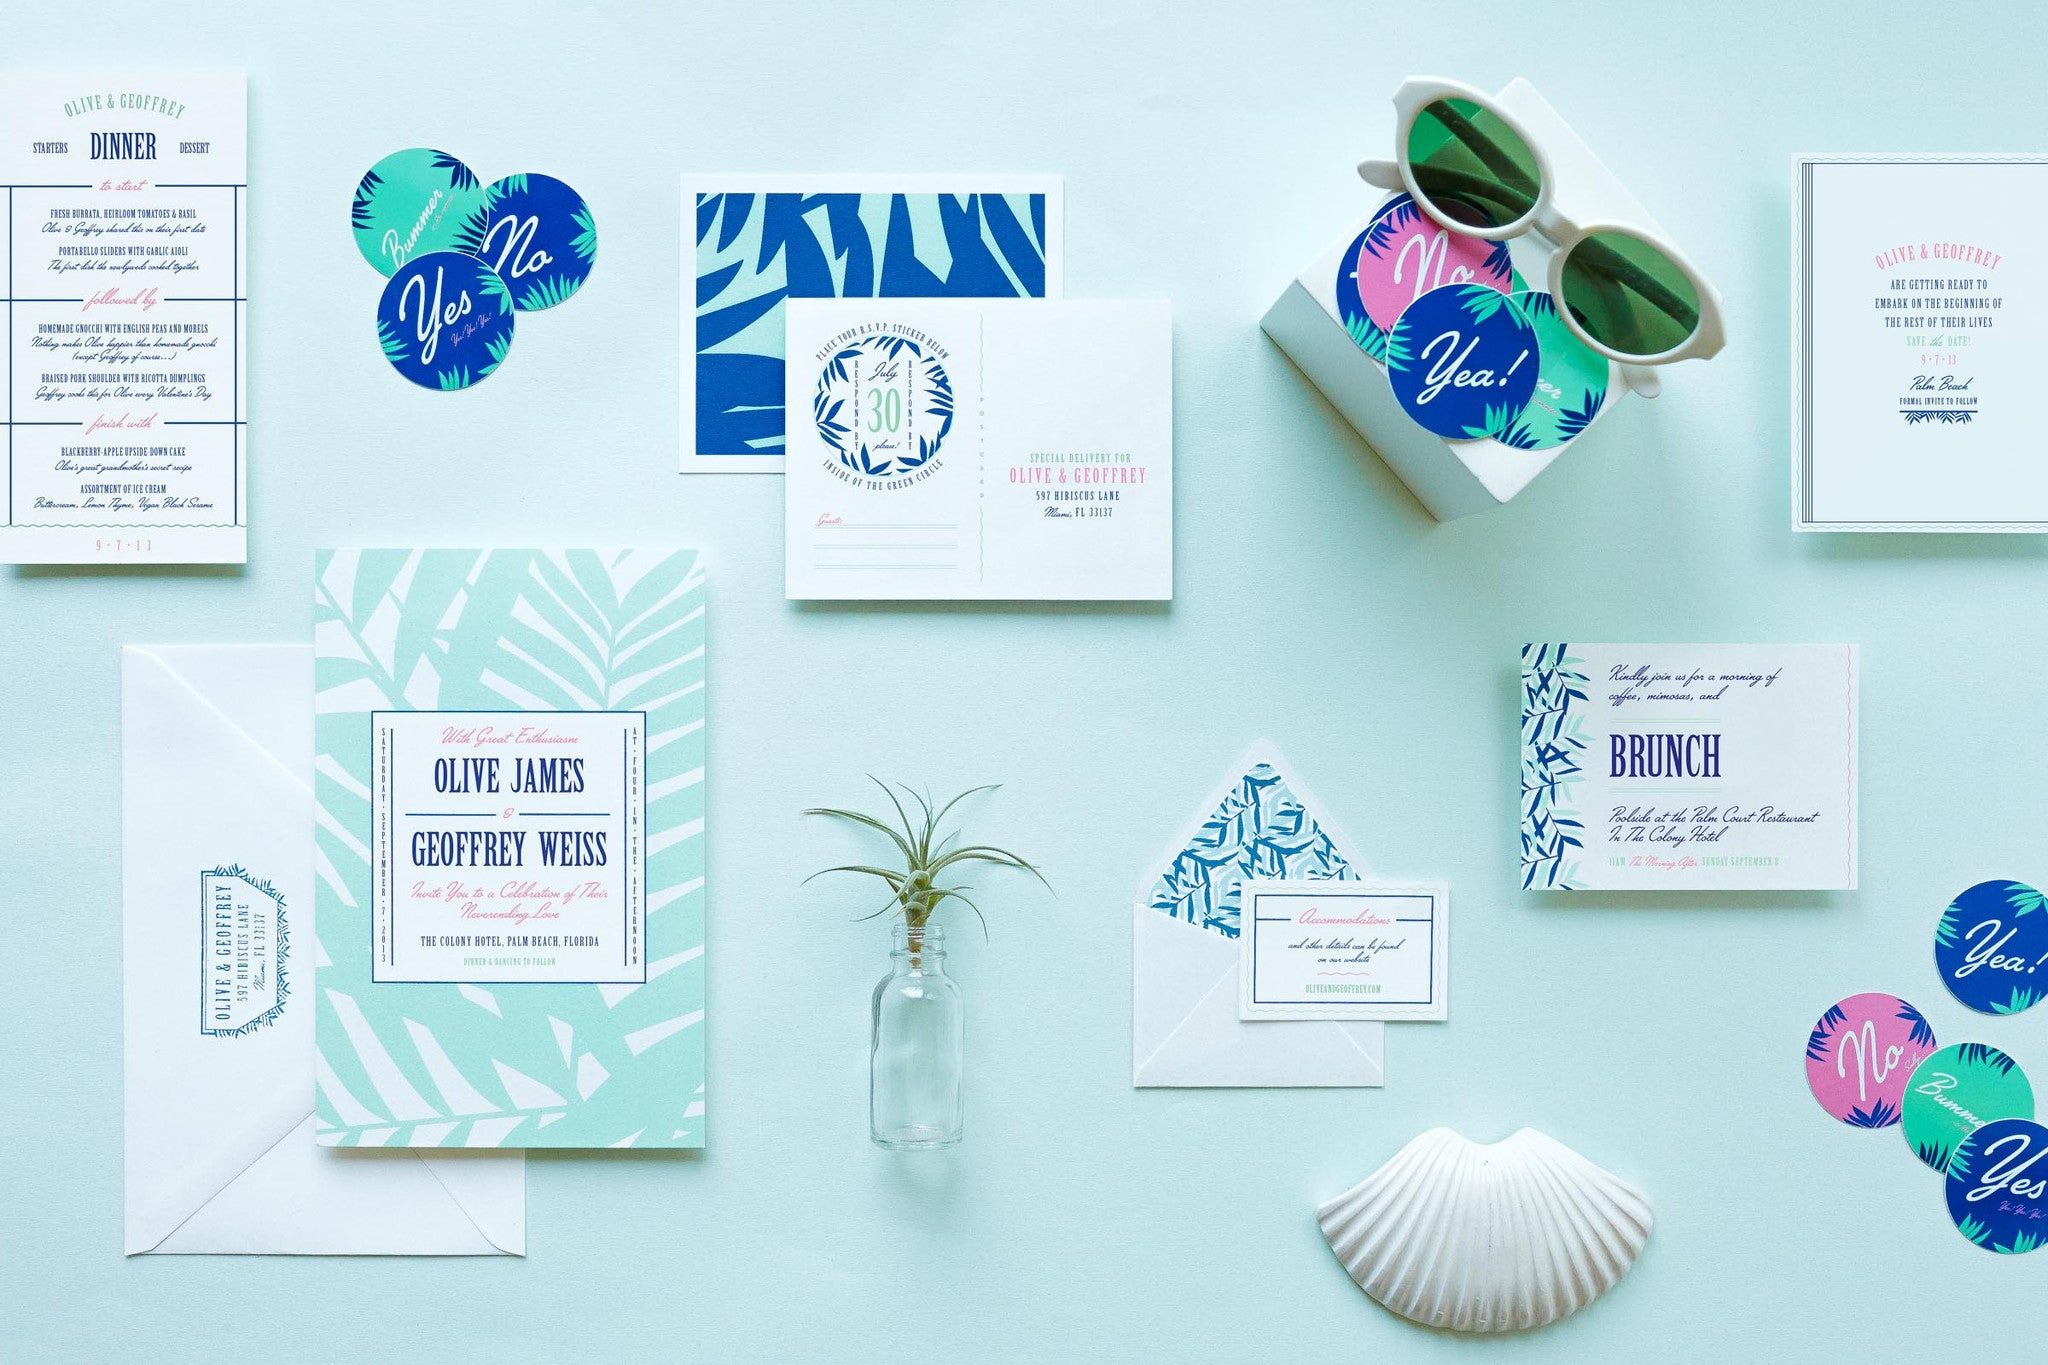 Olive Darlin': Summer Inspired Tropical Beachy Wedding Invitation Suite by My Darlin', a Brooklyn, New York design and paper goods studio | www.mydarl.in